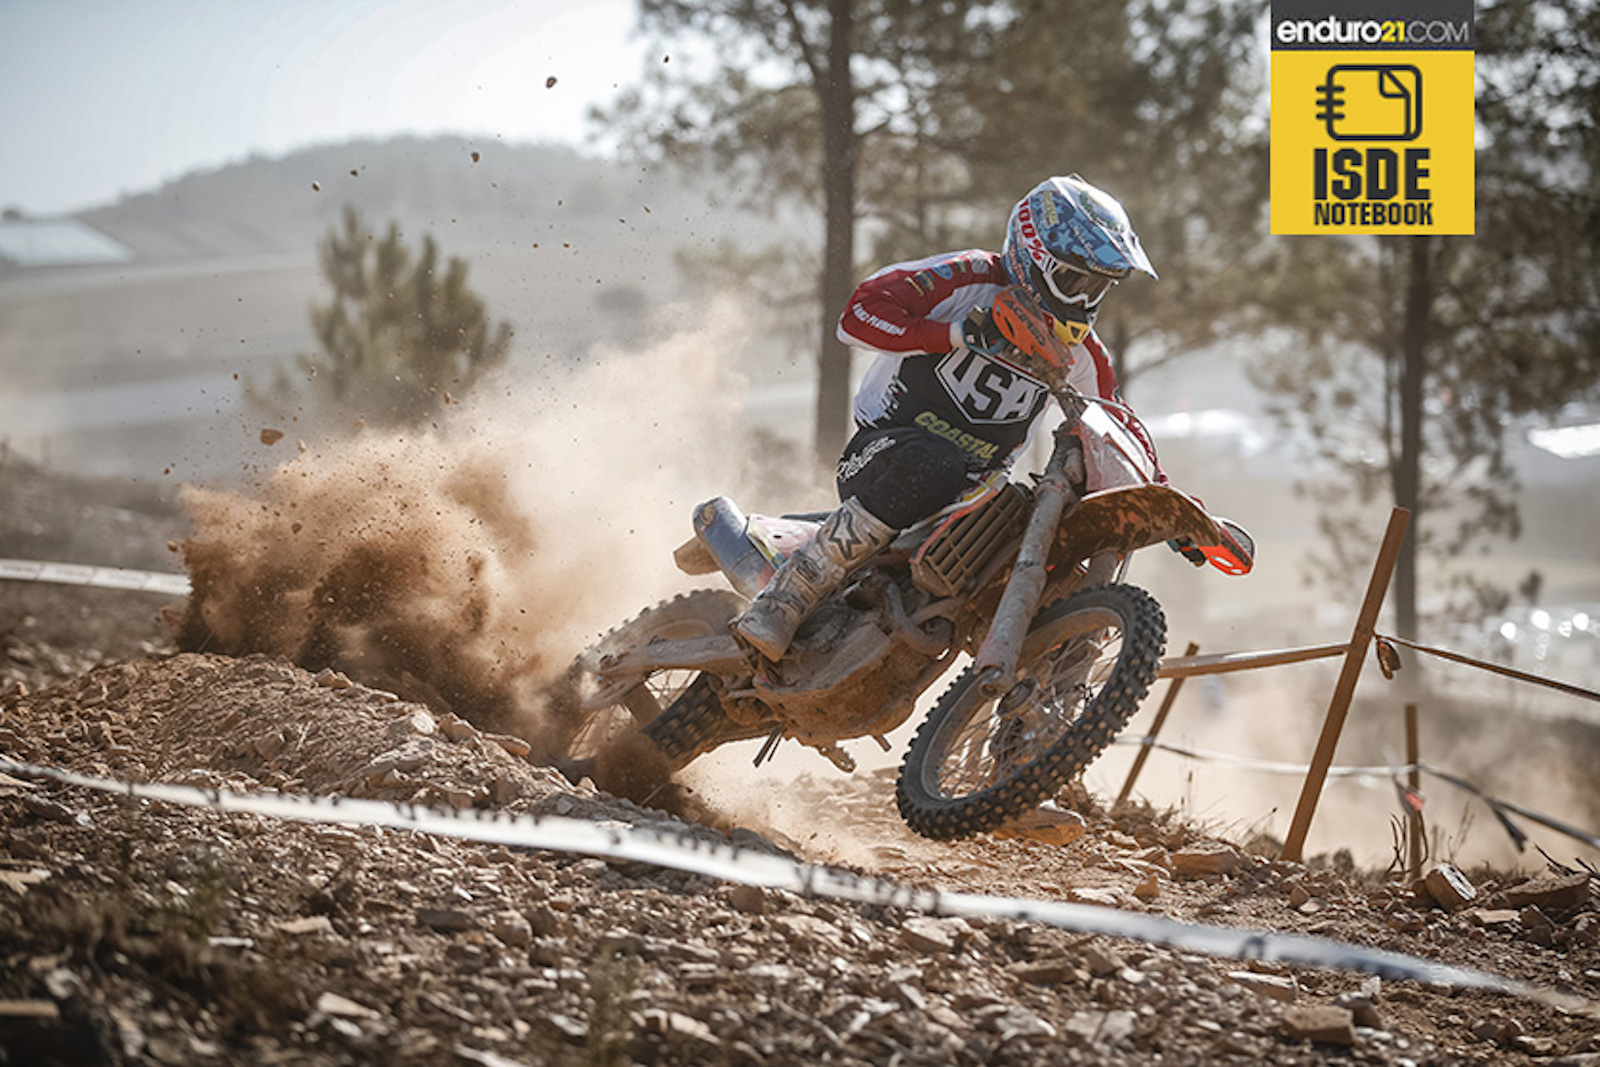 ISDE 2019: Day 2 Notebook direct from Portimao